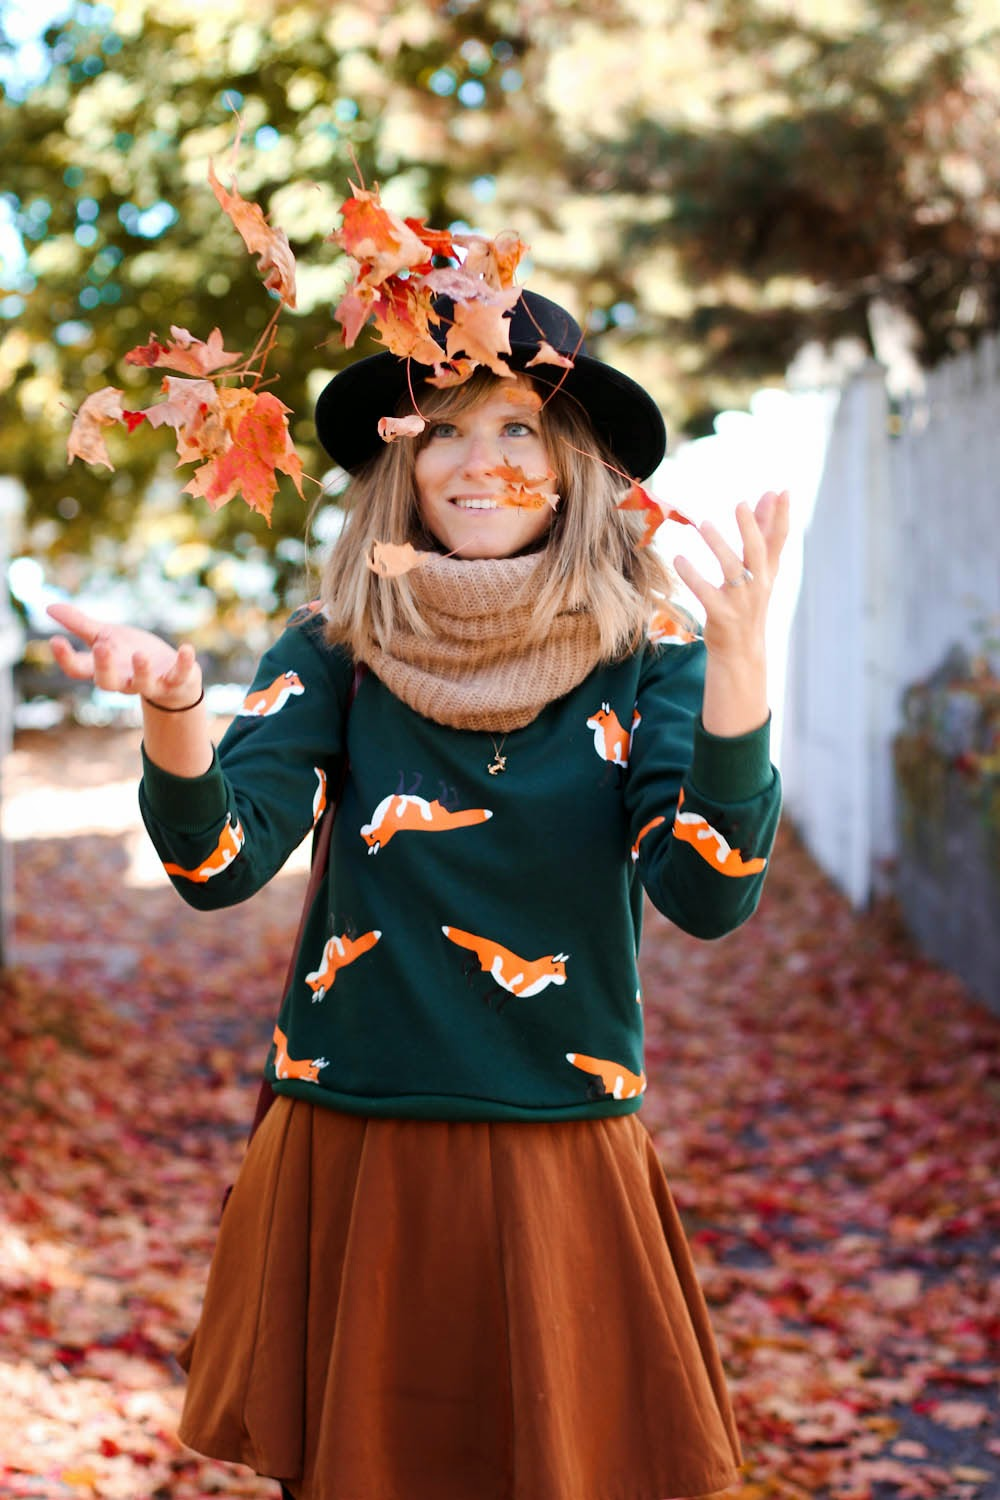 nyc vintage blog, vintage blog, nyc vintage fashion blog, foxes sweater, forever 21 circle skirt, fall style post